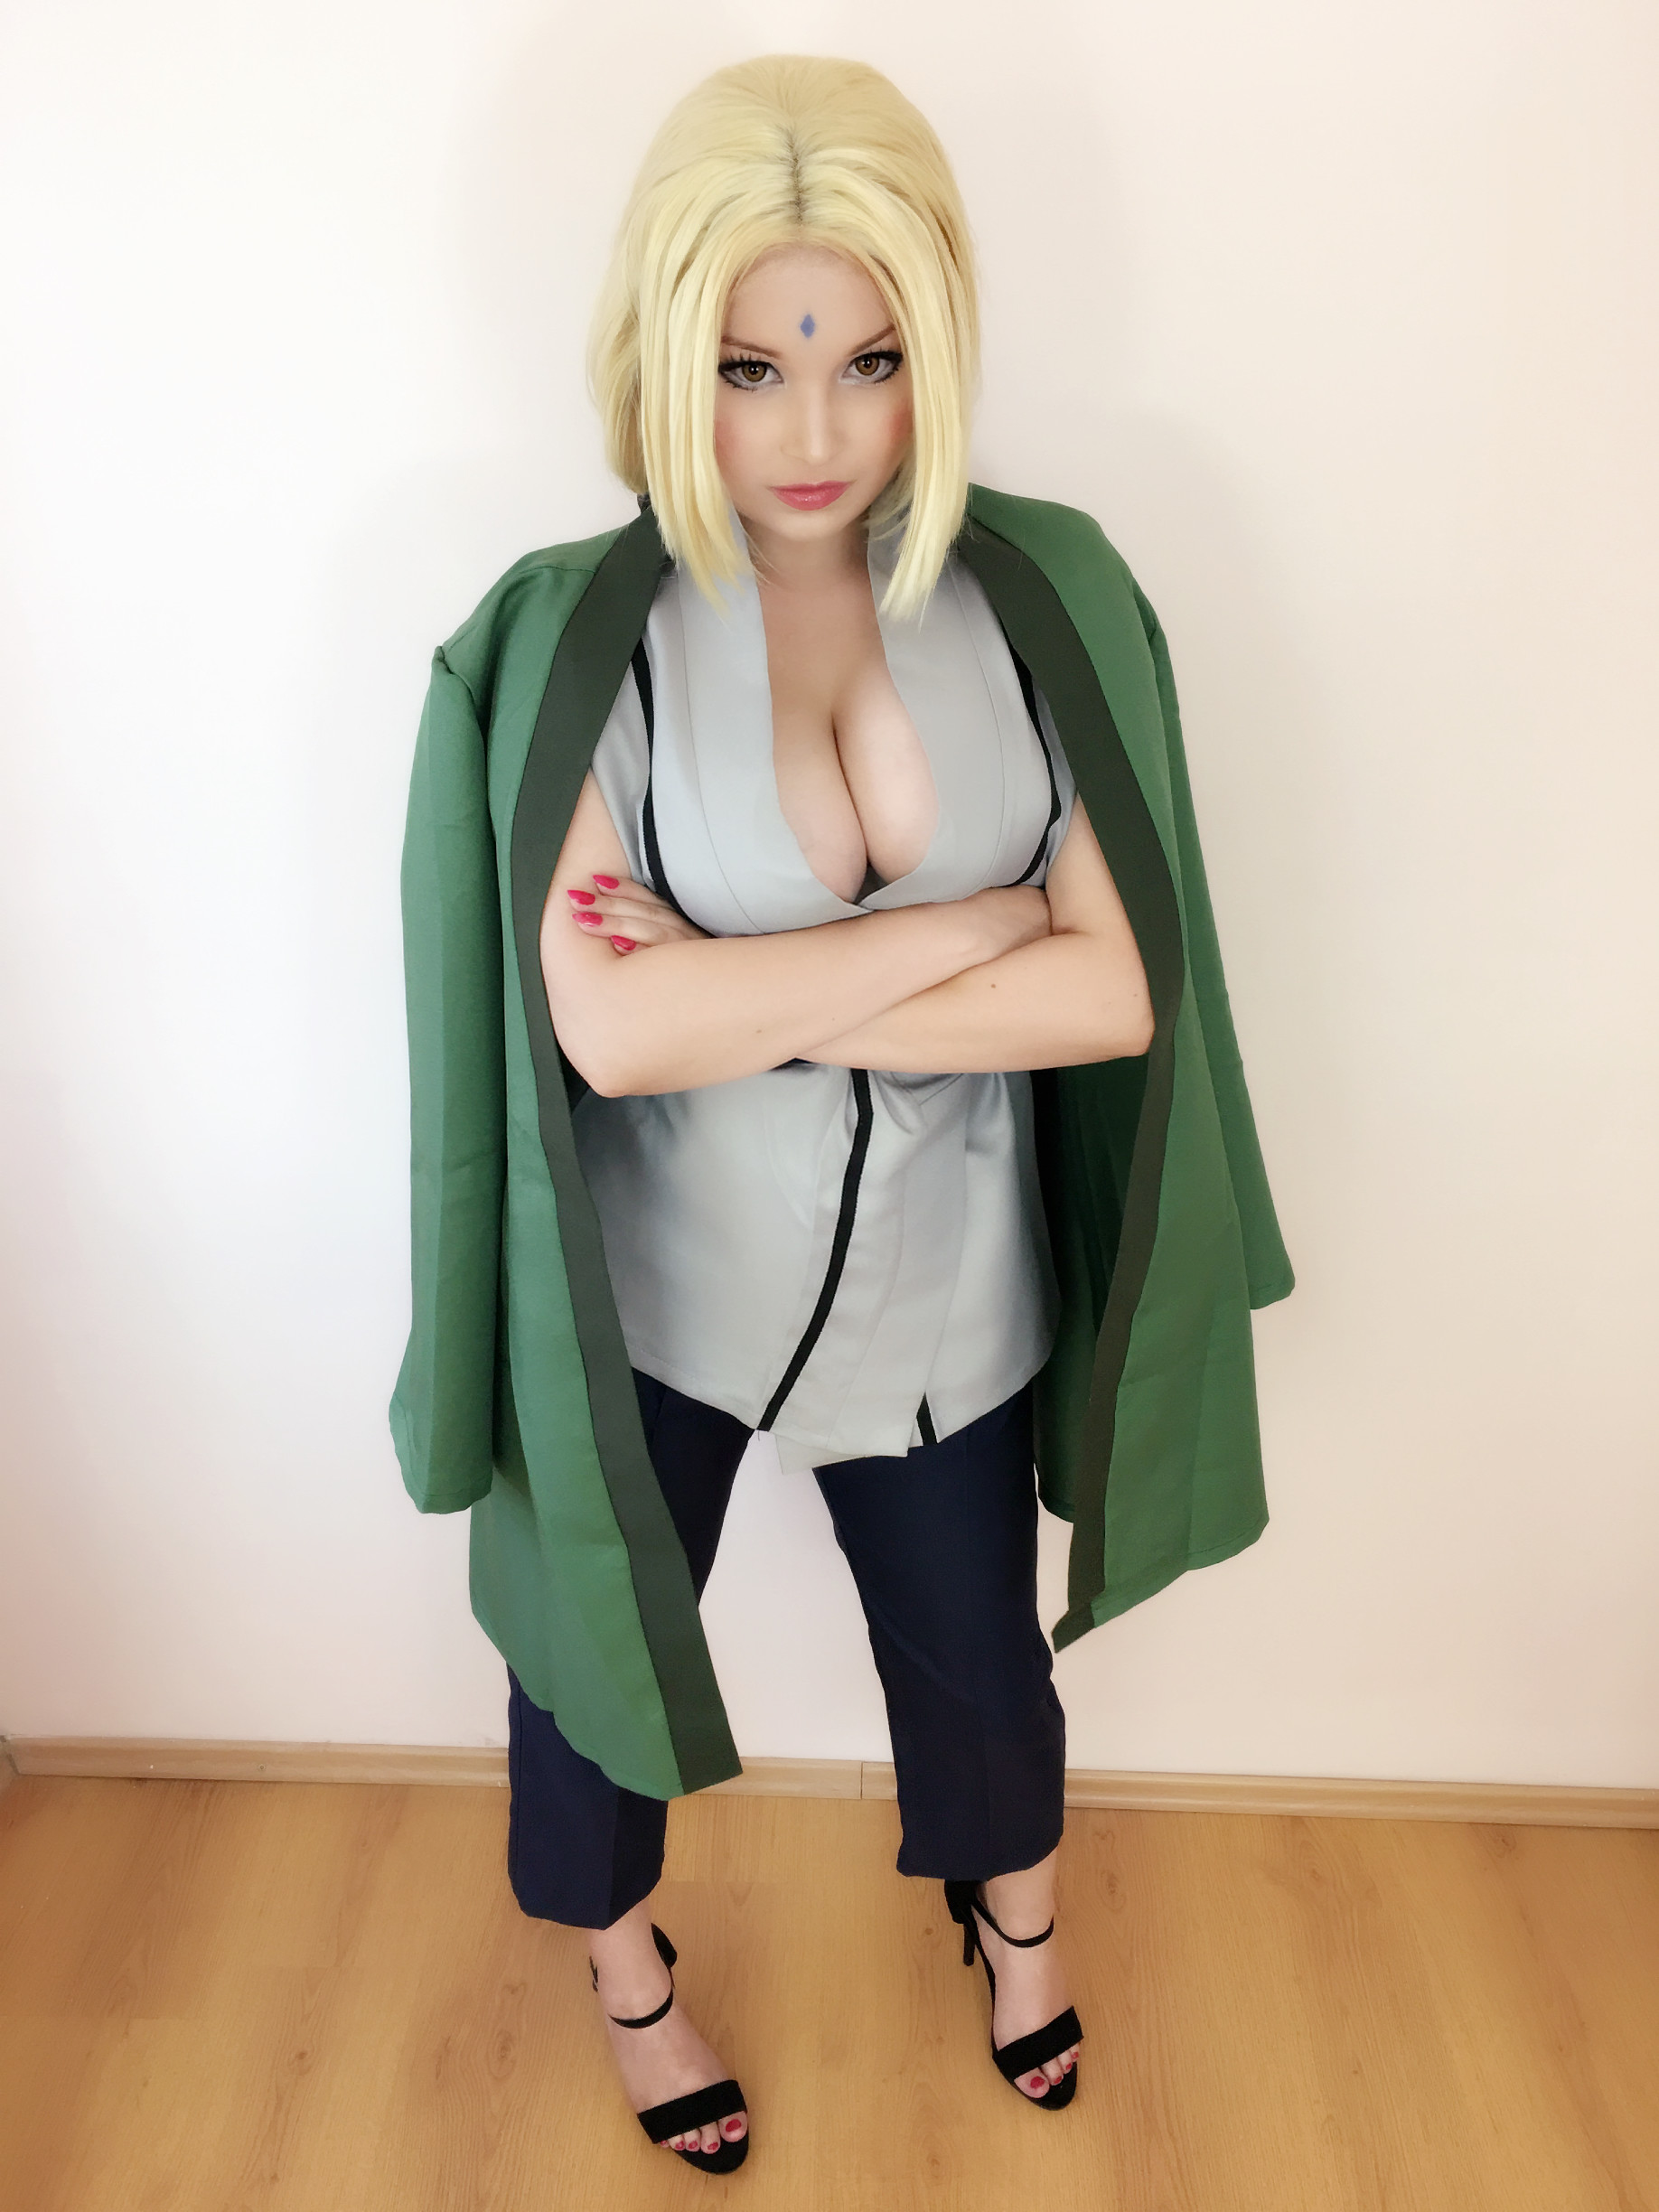 Cosplay tsunade nude models, amateur xxx links